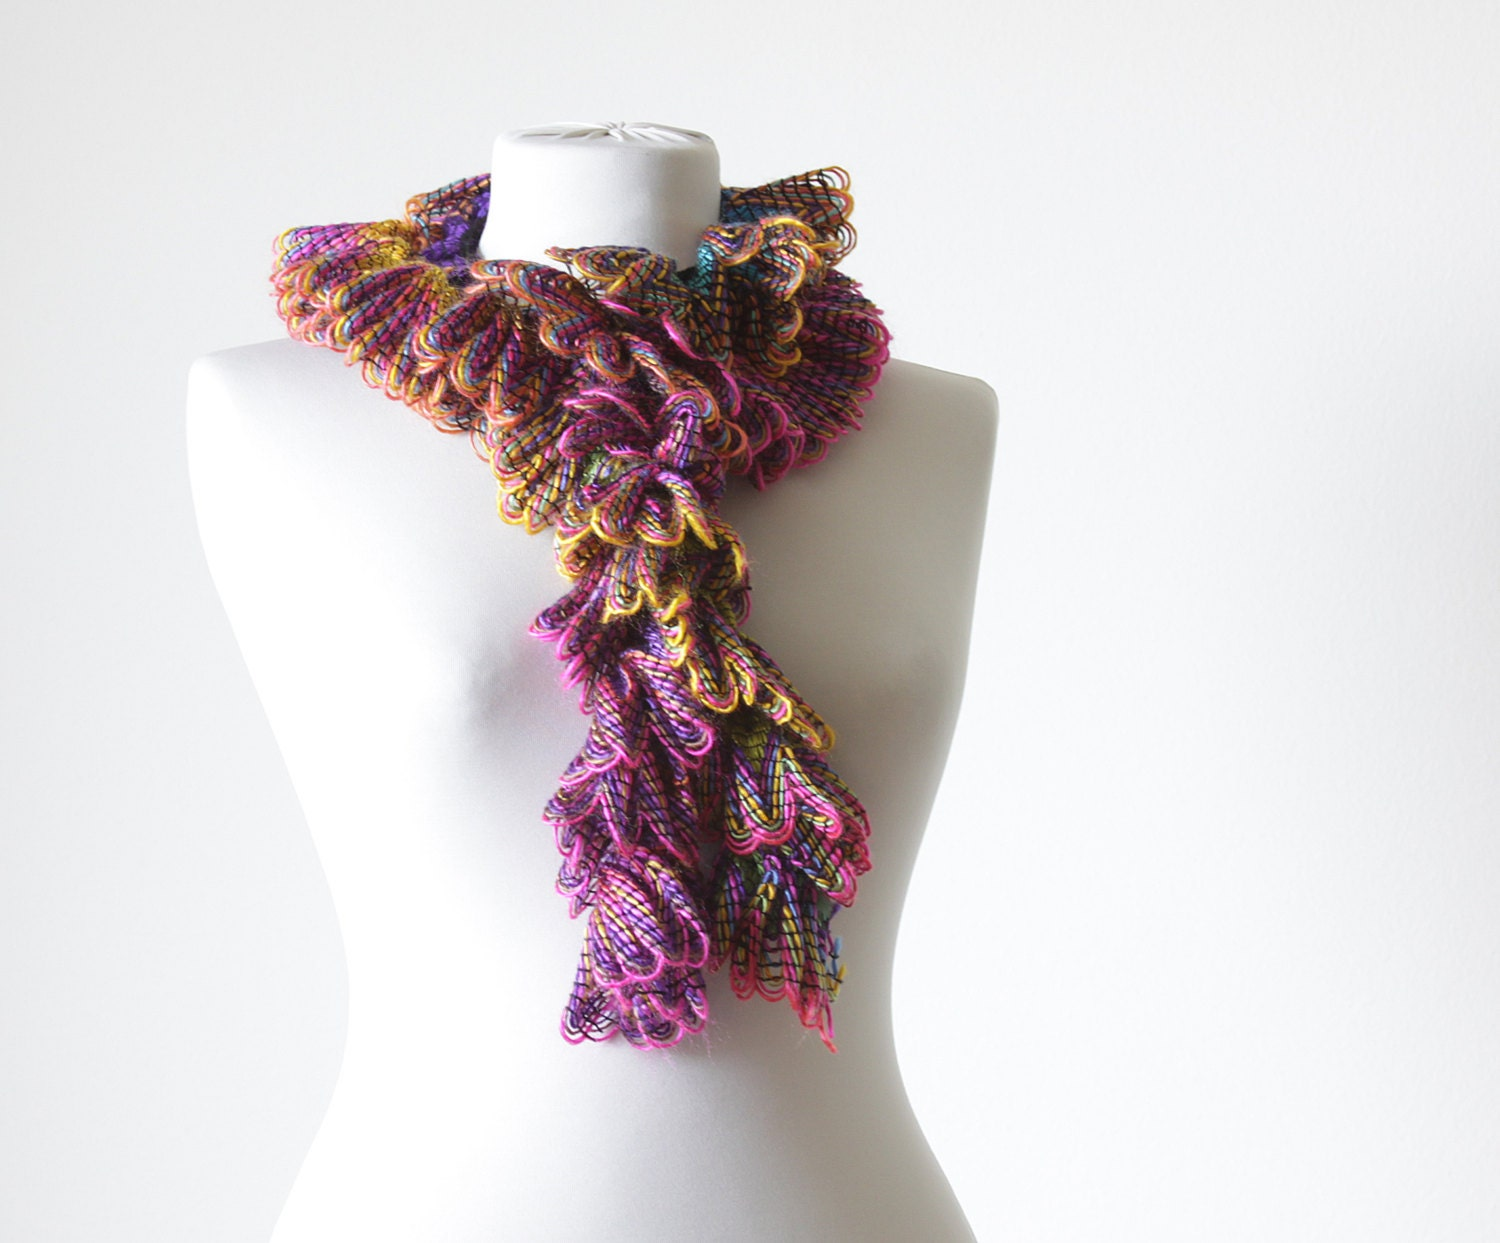 Women Crochet Scarf Accessories Handmade Neck accessory multi color Neck Scarves For Women